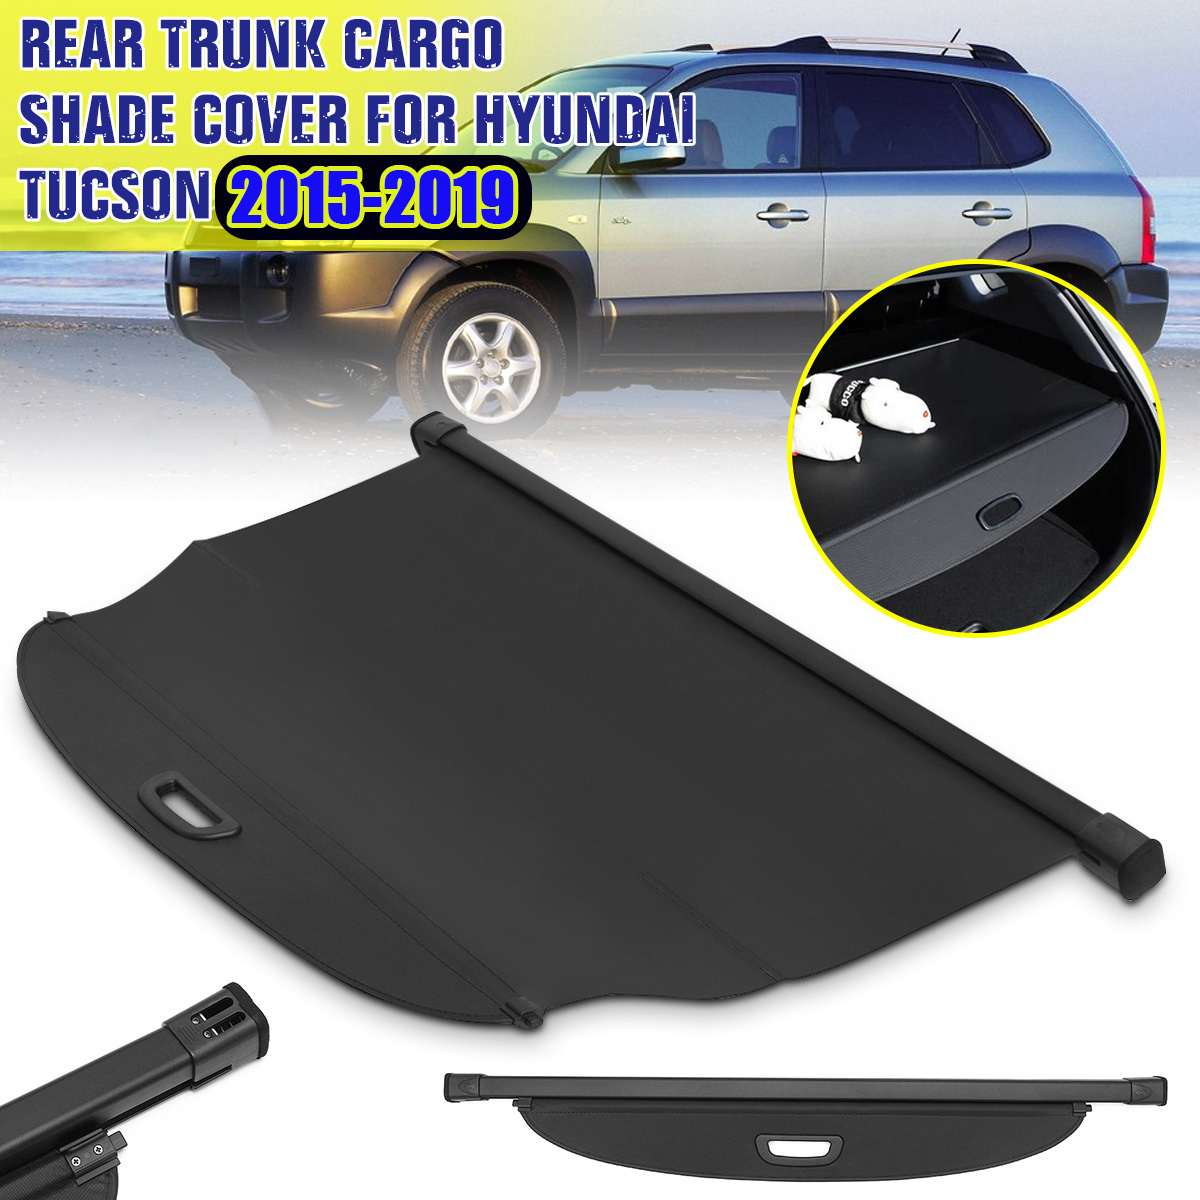 Car Cargo Cover Rear Trunk Luggage Boot Security Shade For Hyundai Tucson 2015 2016 2017 2018 2019